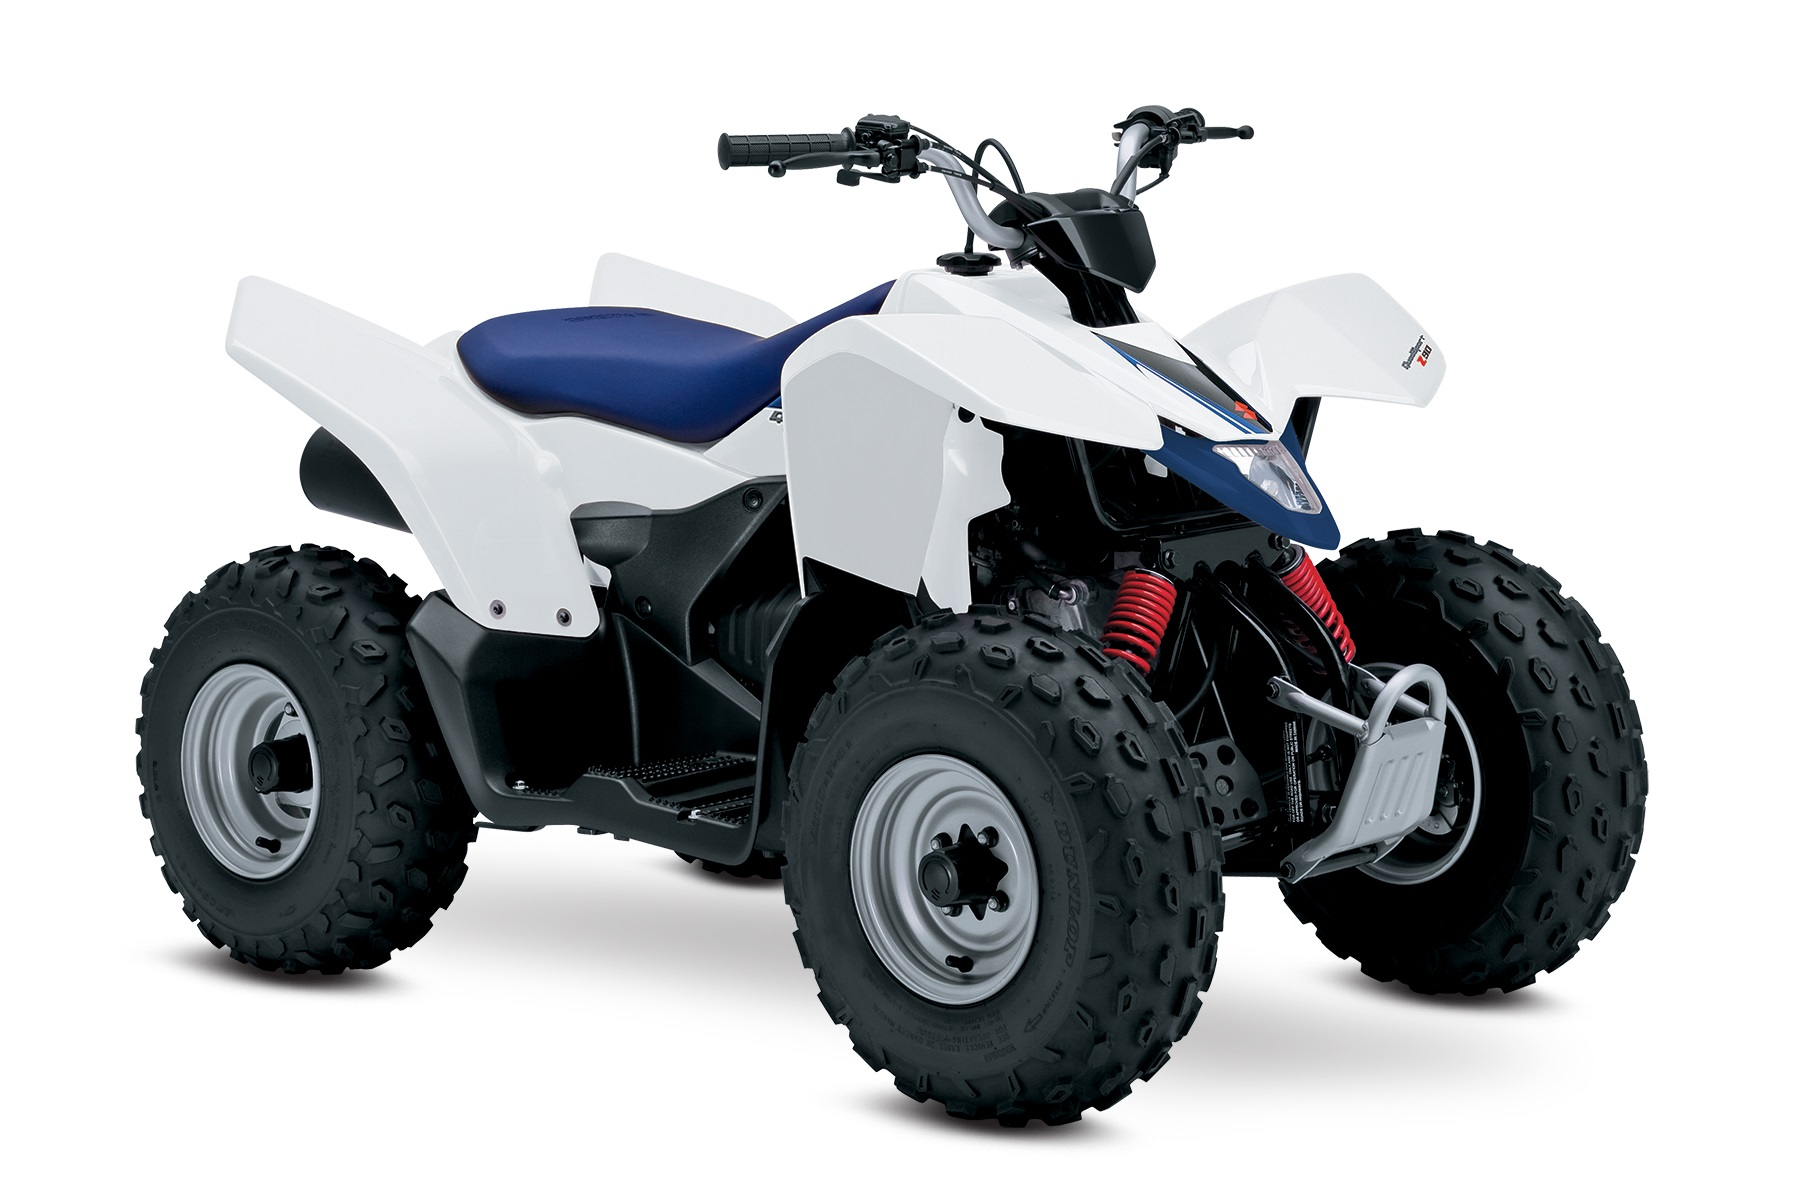 2016 additional suzuki atv line-up released - midwest sports